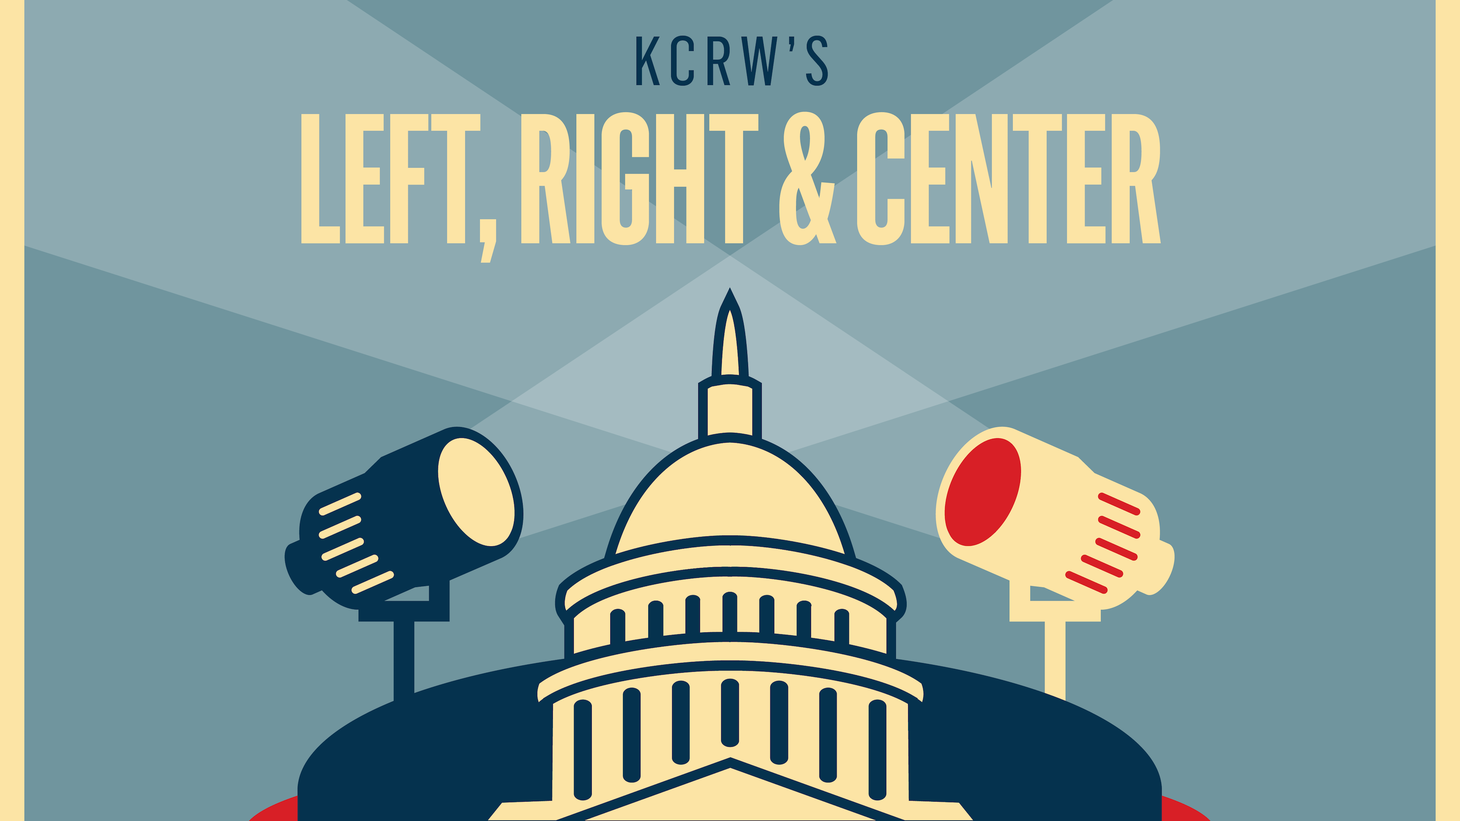 Matt Miller is away.  Sitting in for him today as moderator is award-winning writer and photographer Sara Terry, a frequent guest host on KCRW's To the Point.